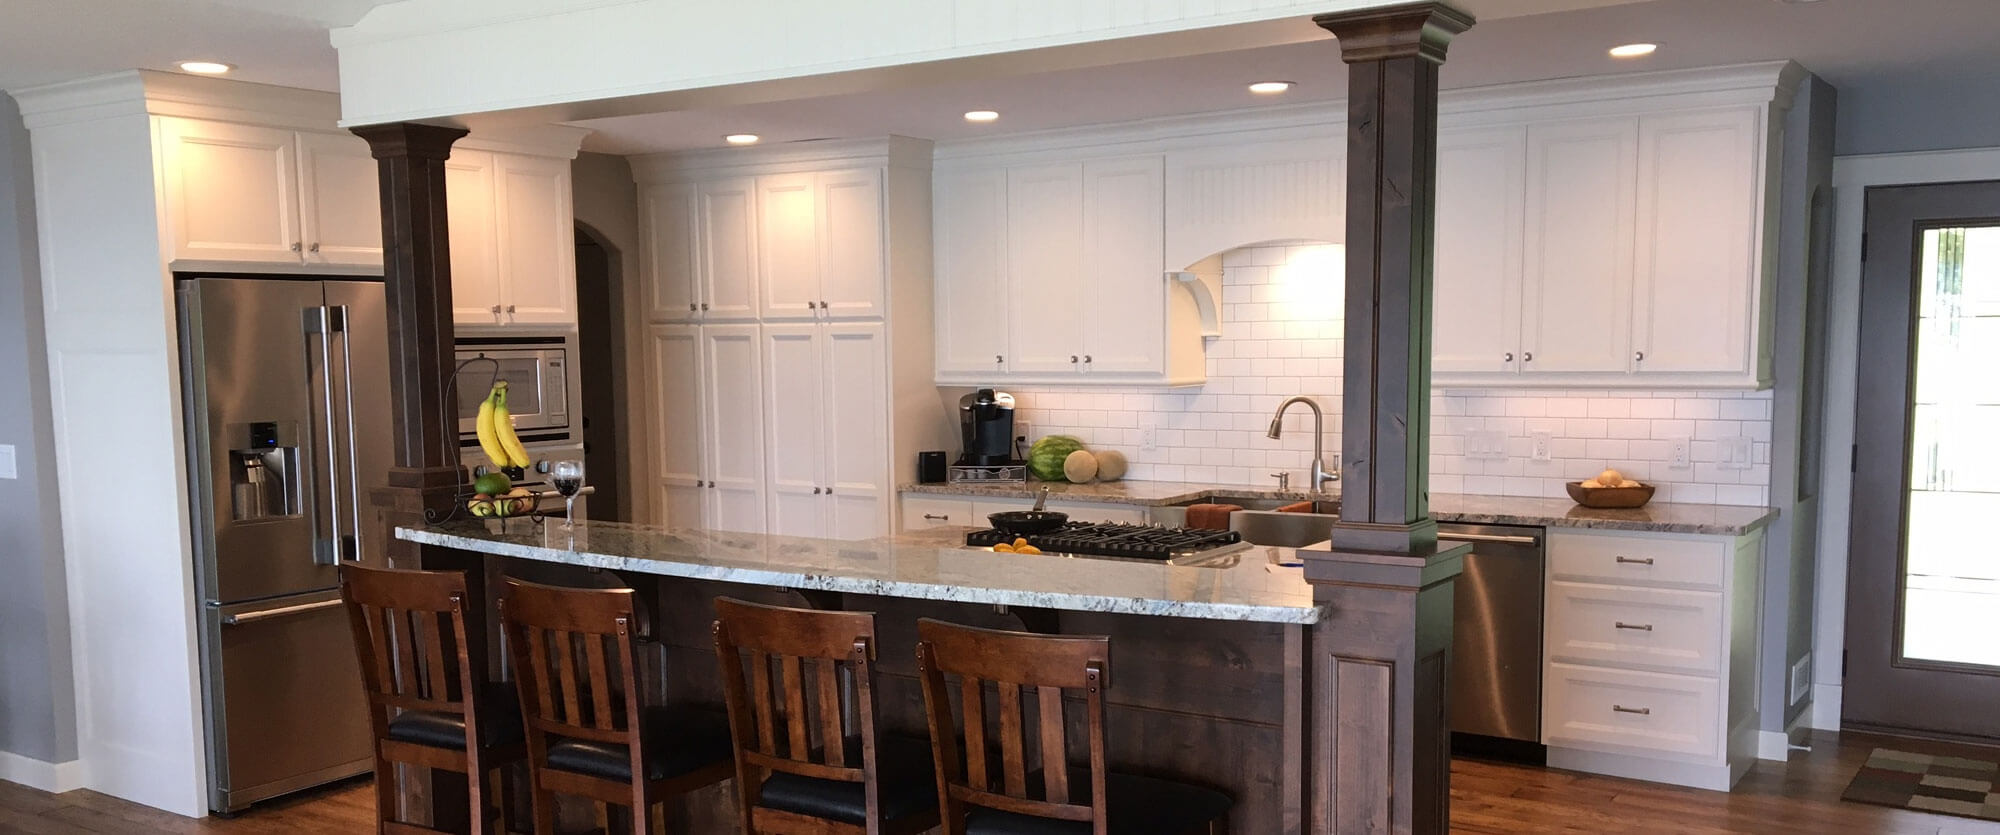 Custom kitchen cabinets made of solid wood and painted white featuring a breakfast bar island; designed, built, and installed by finewood Structures of Browerville, MN